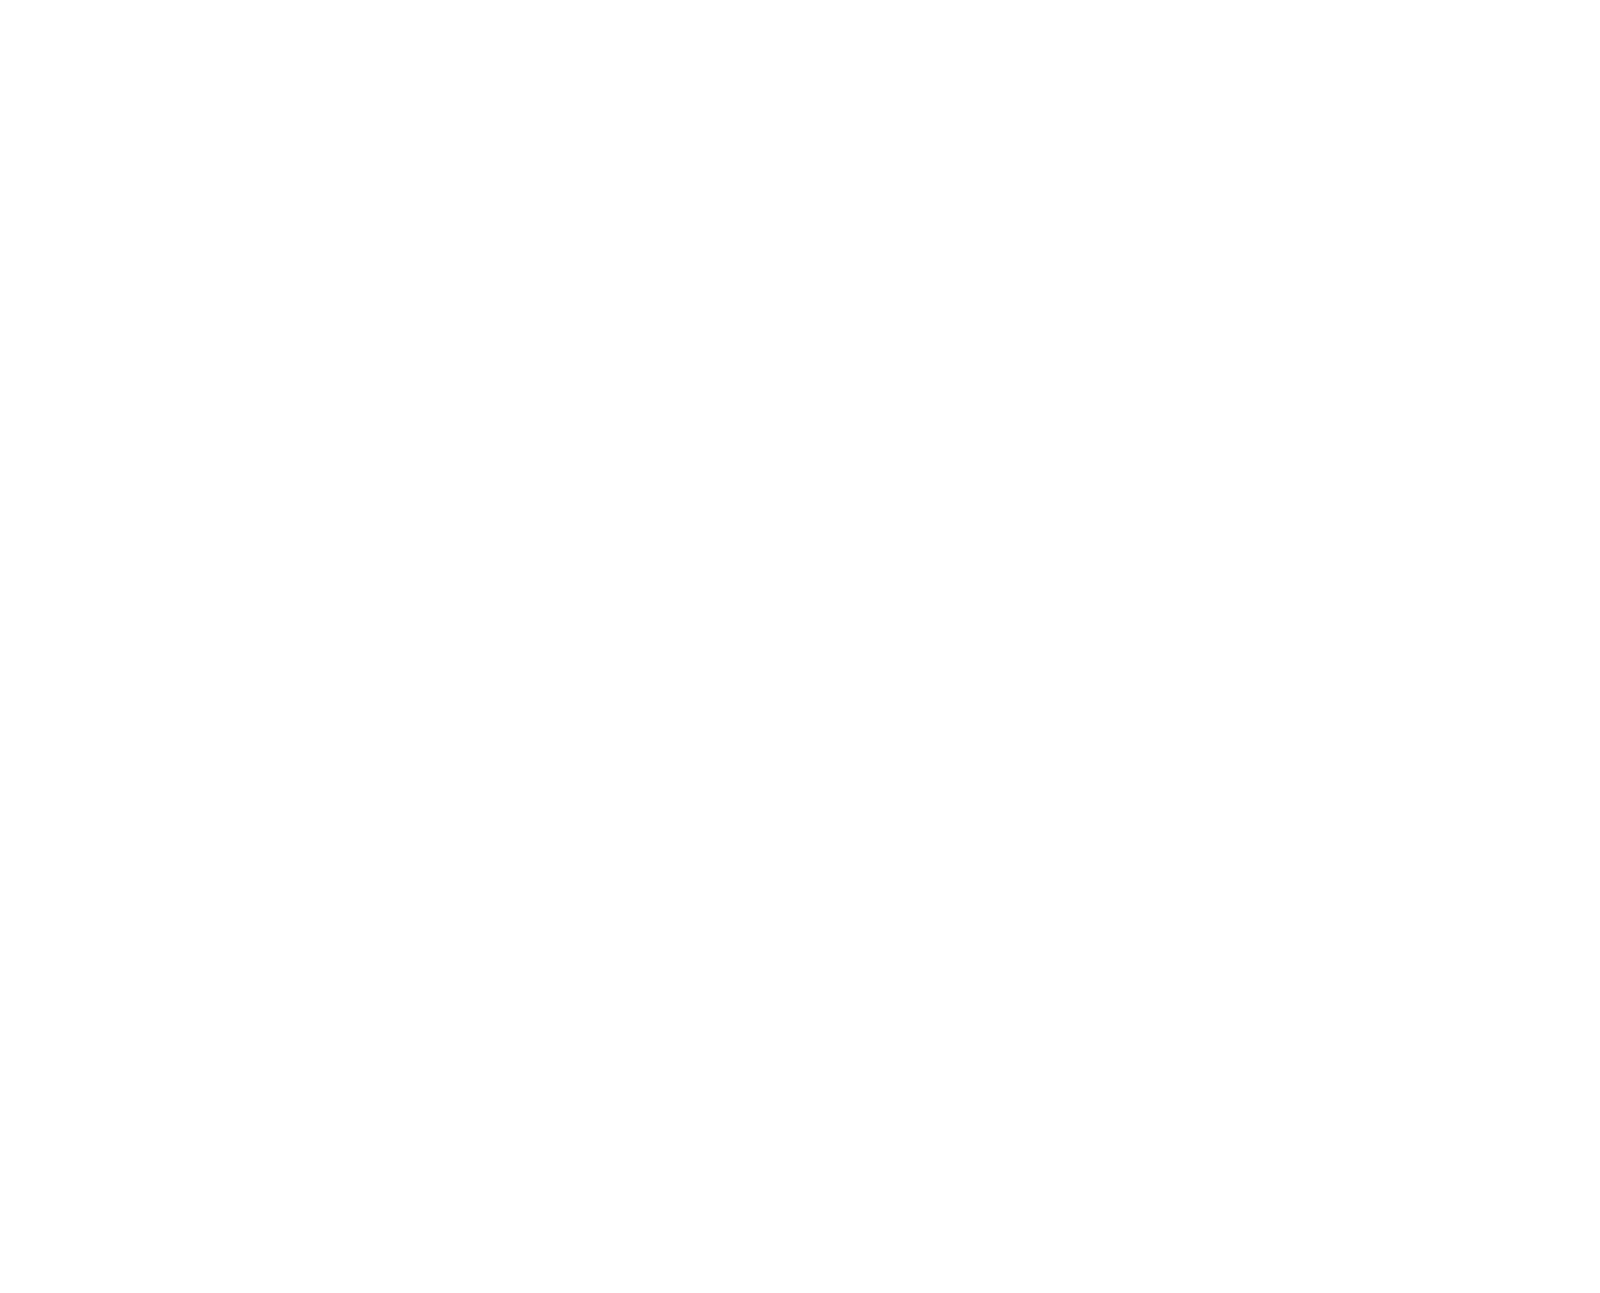 EXPEDITIONS CORESCO